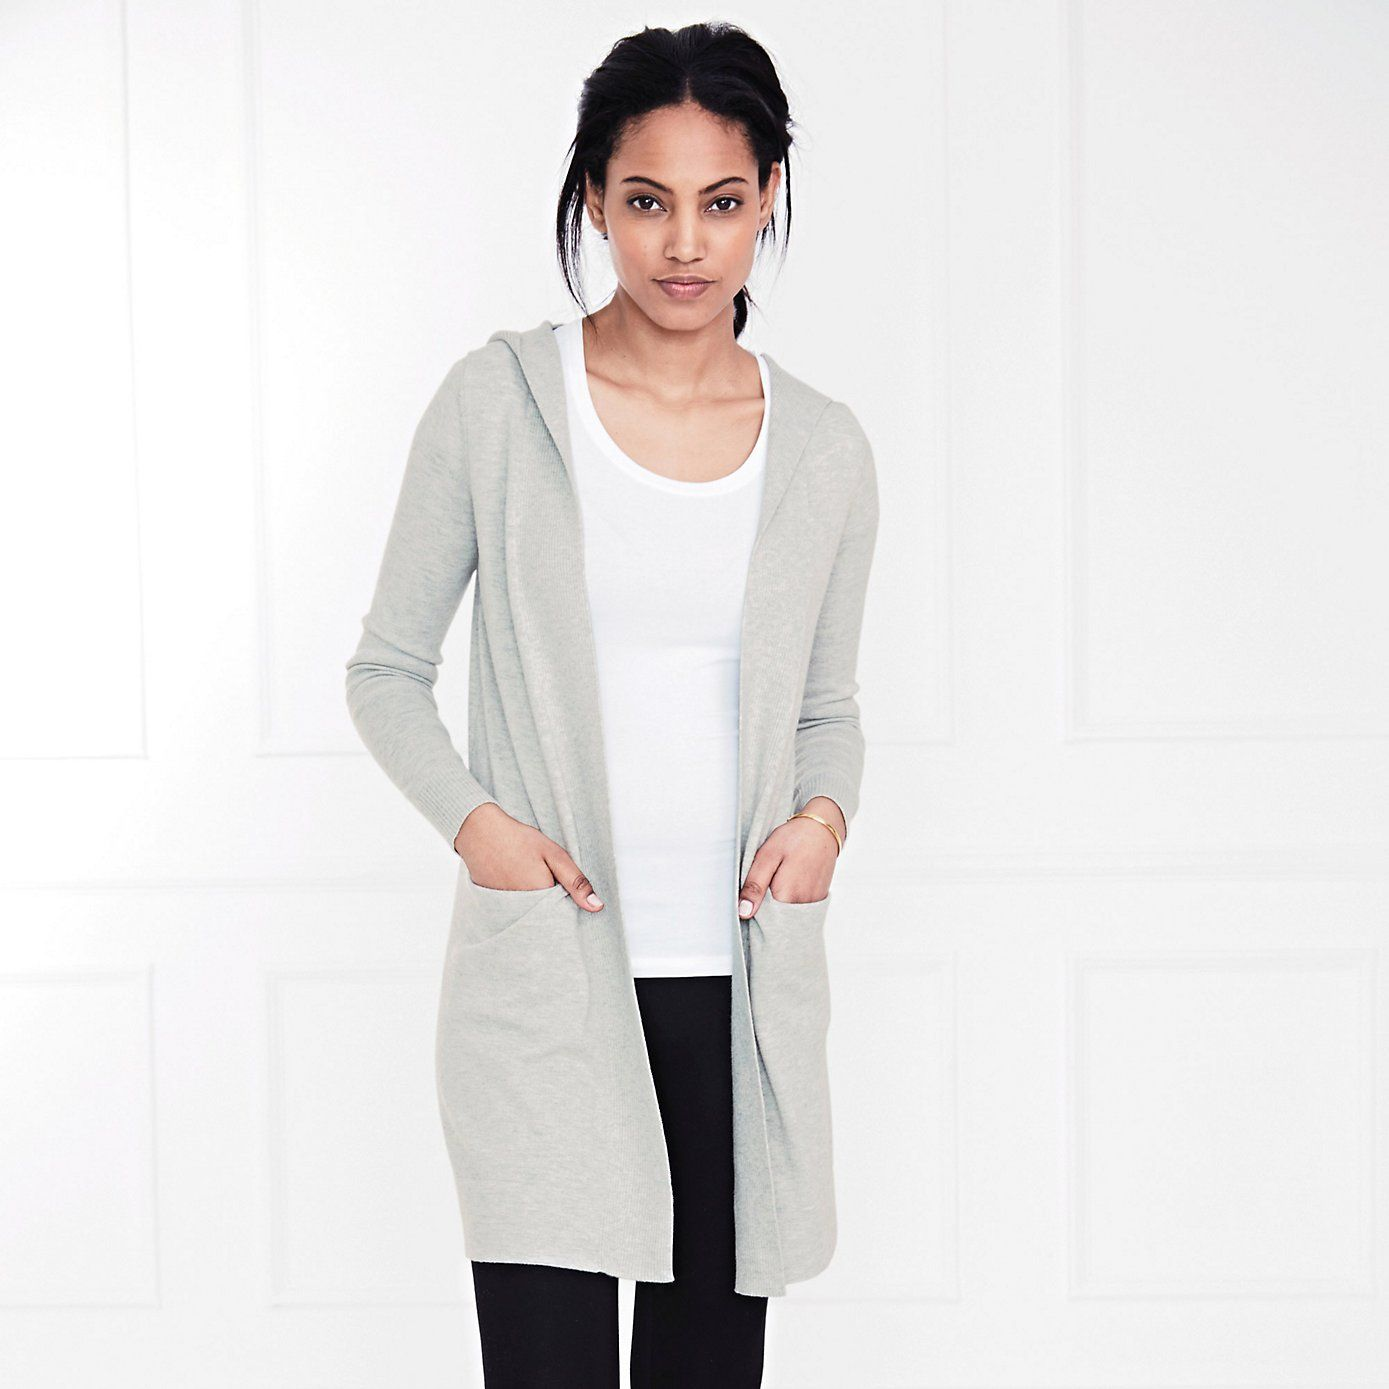 Long Hooded Cardigan - Silver Grey Marl   The White Company   AW ...